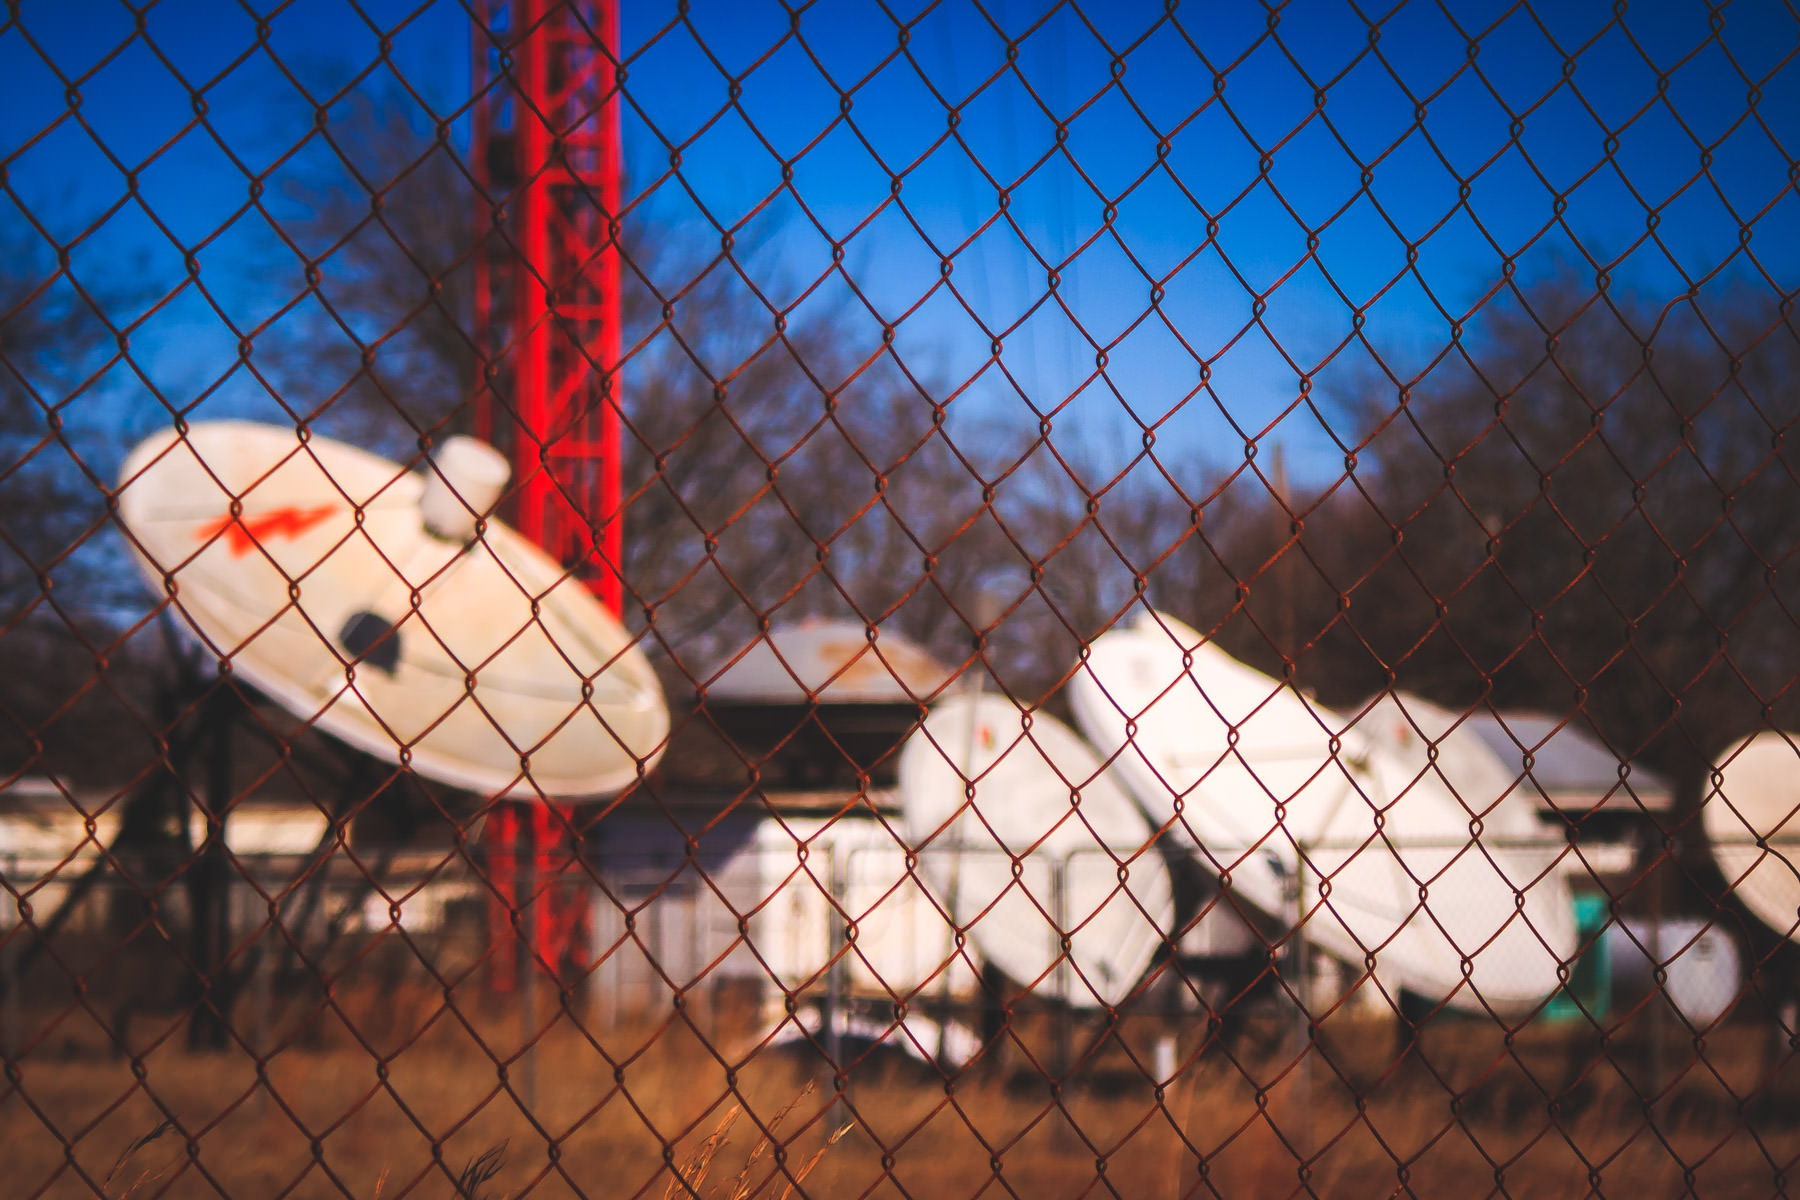 KLTV's uplink and downlink facility in Tyler, Texas.